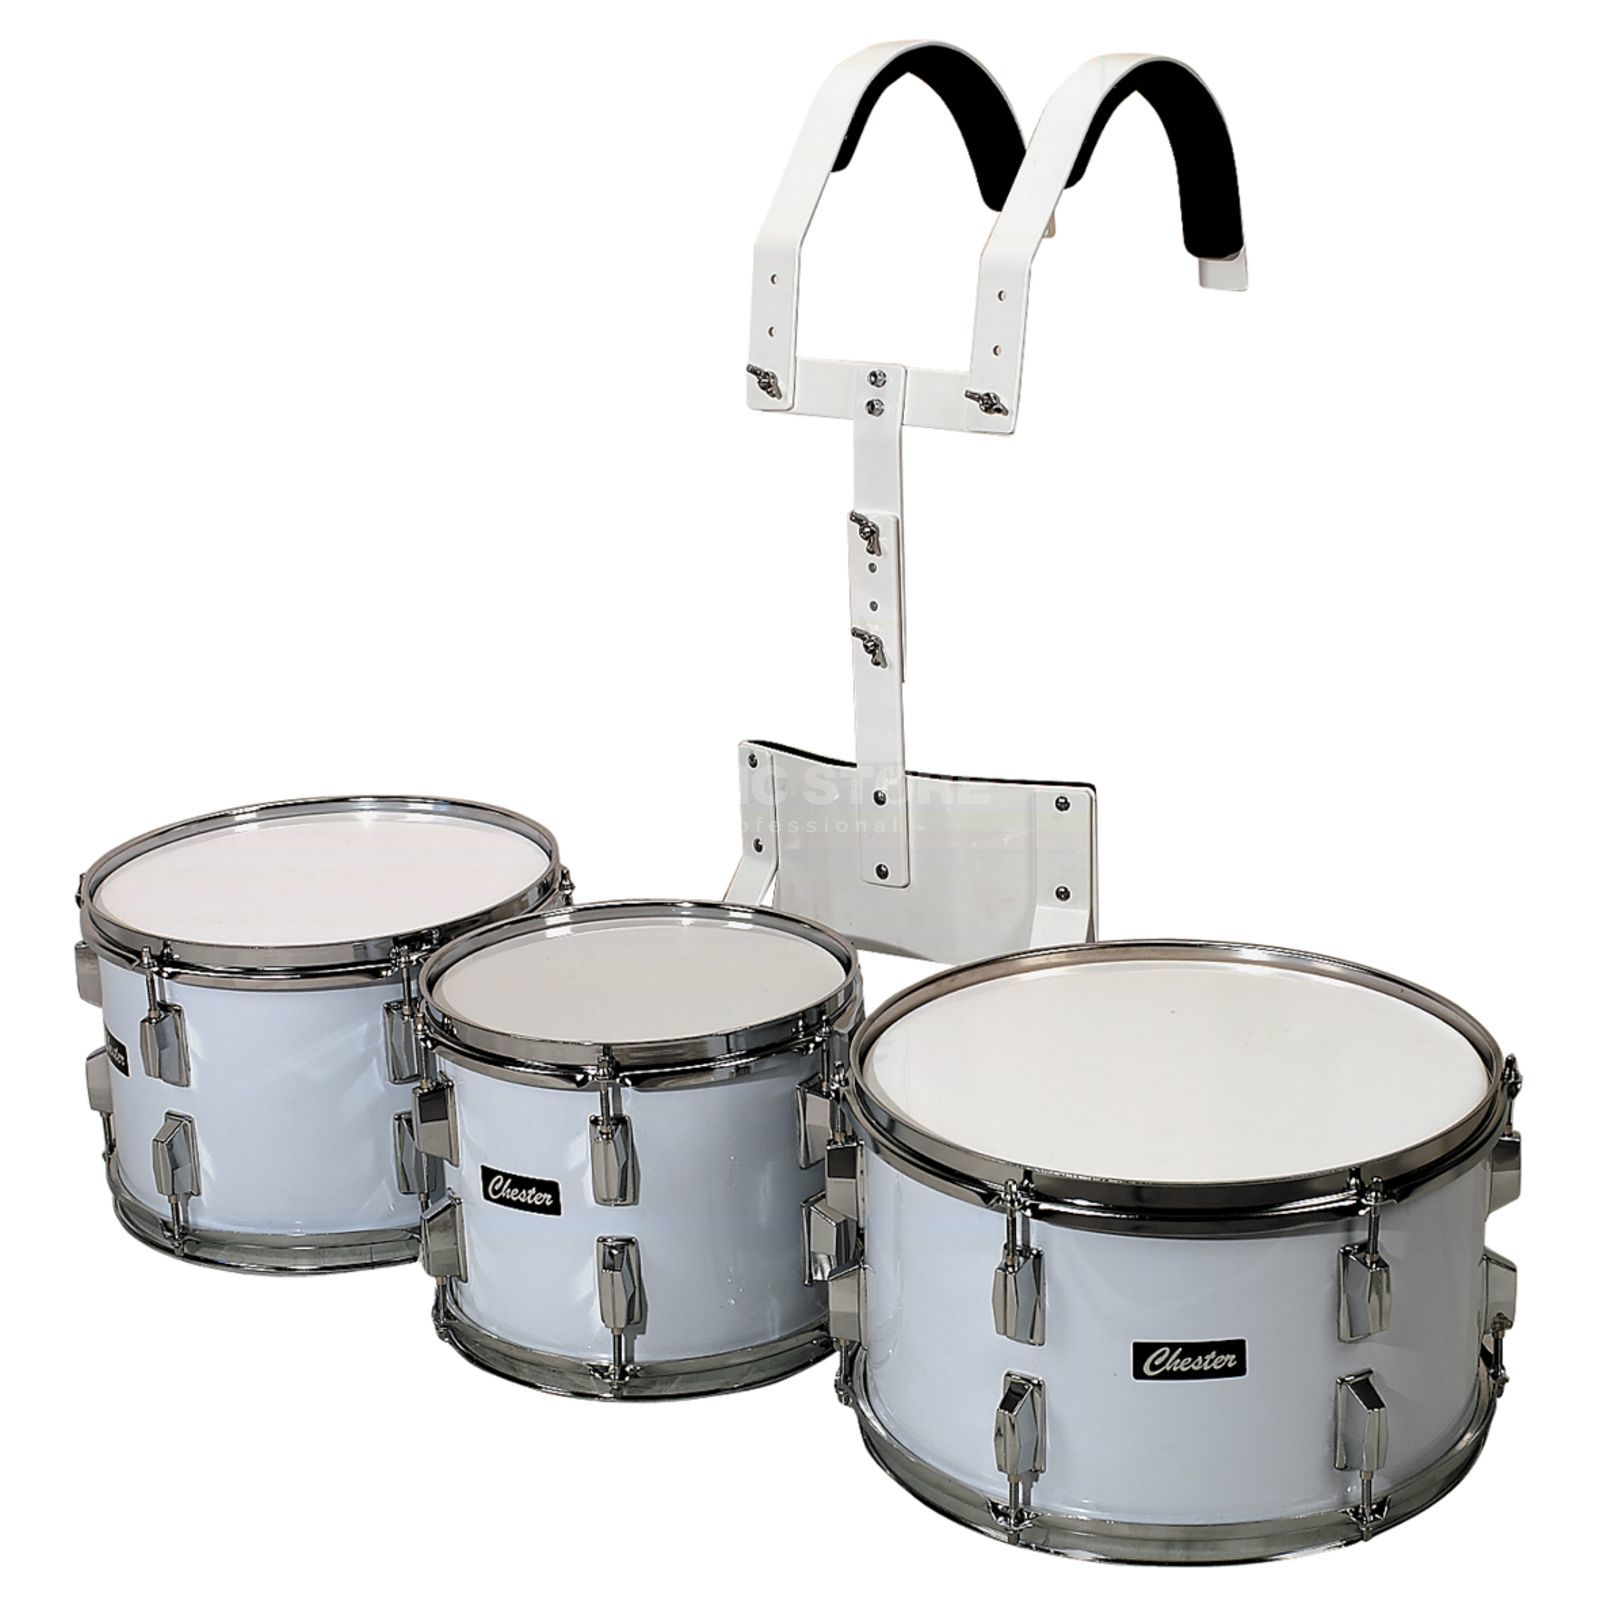 "Gewa Marching Drum Set, 10"", 12"", 14"" Produktbild"